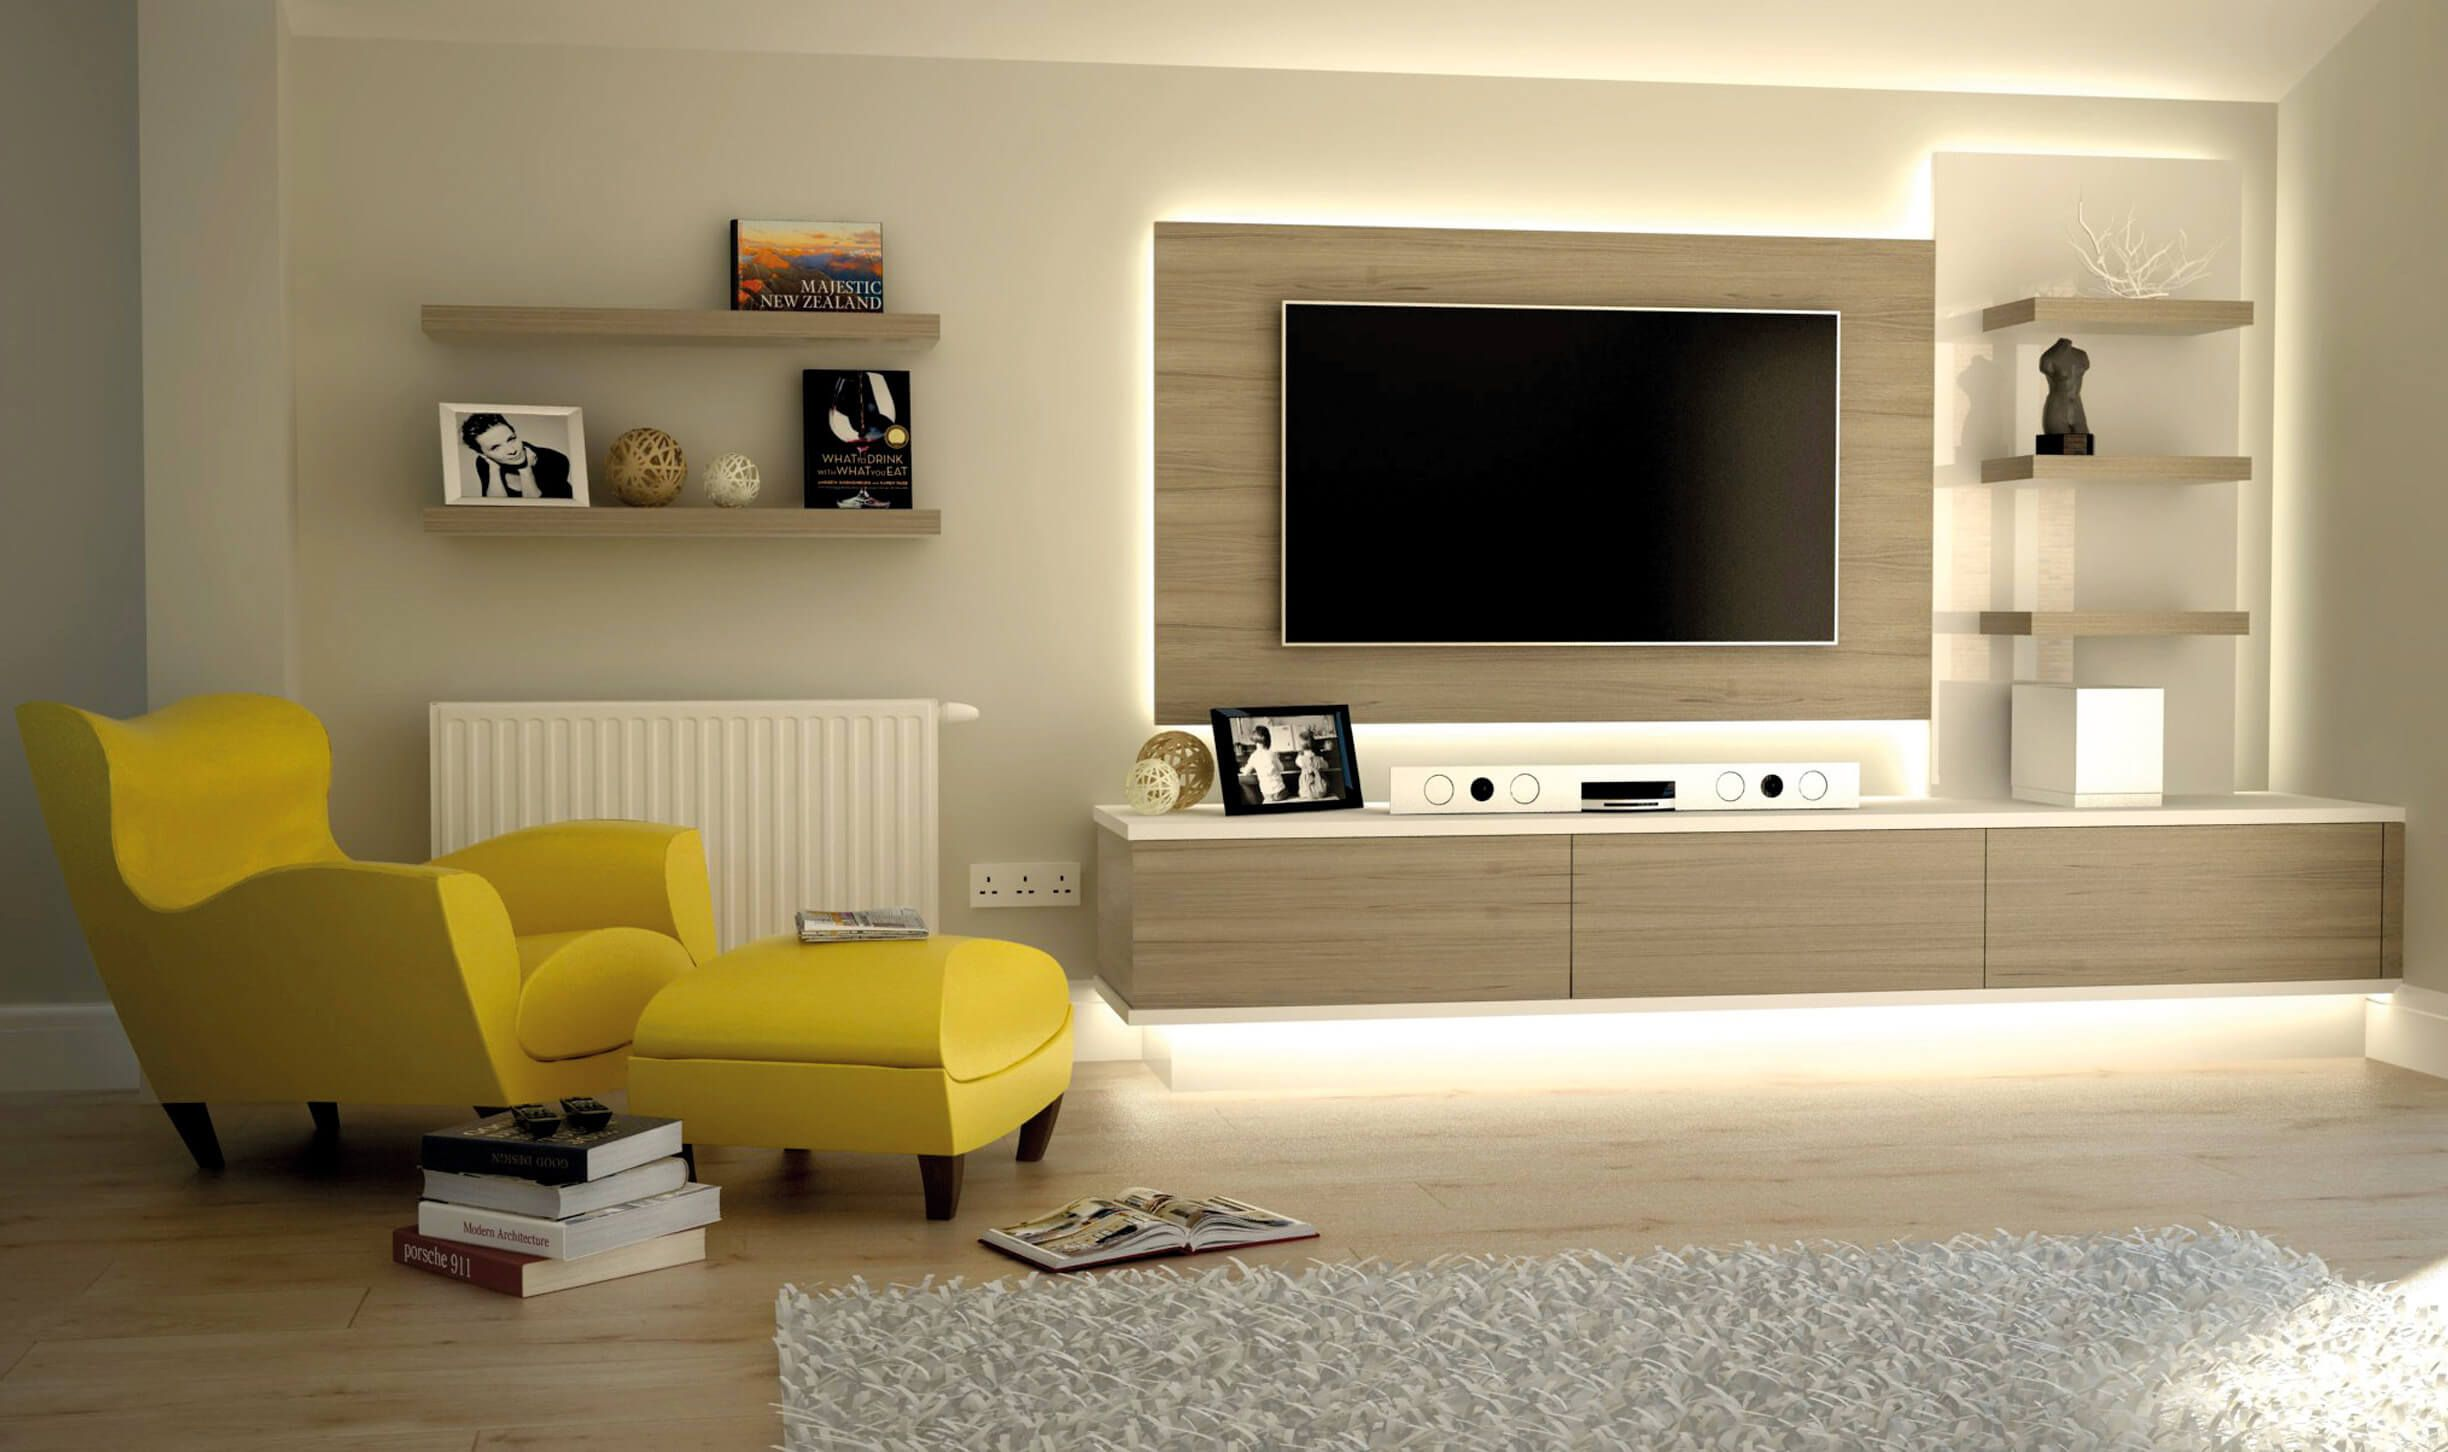 Bespoke TV Cabinets, Bookcases And Storage Units. For Over 50 Years Our  Family And